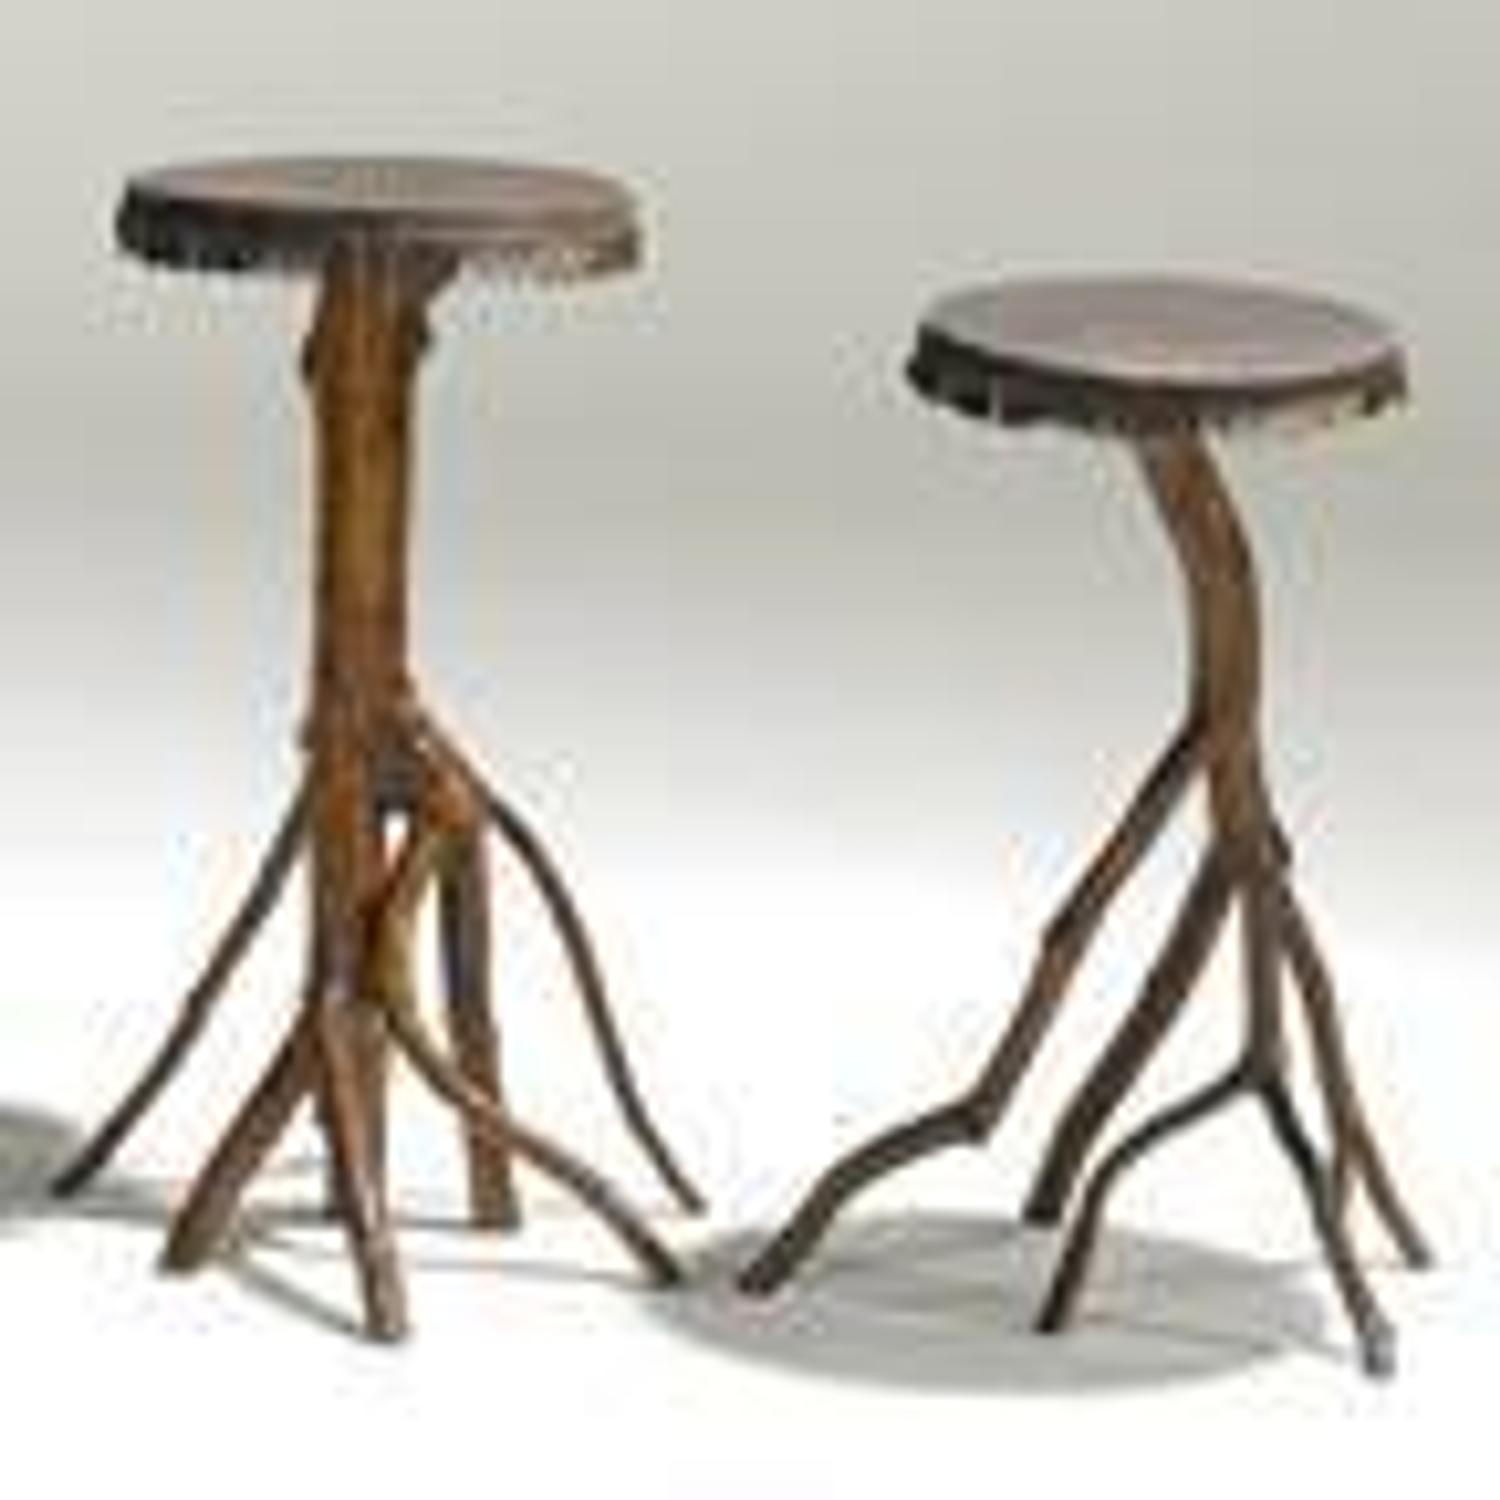 Arts and crafts movement furniture from vancroft mansion back on the